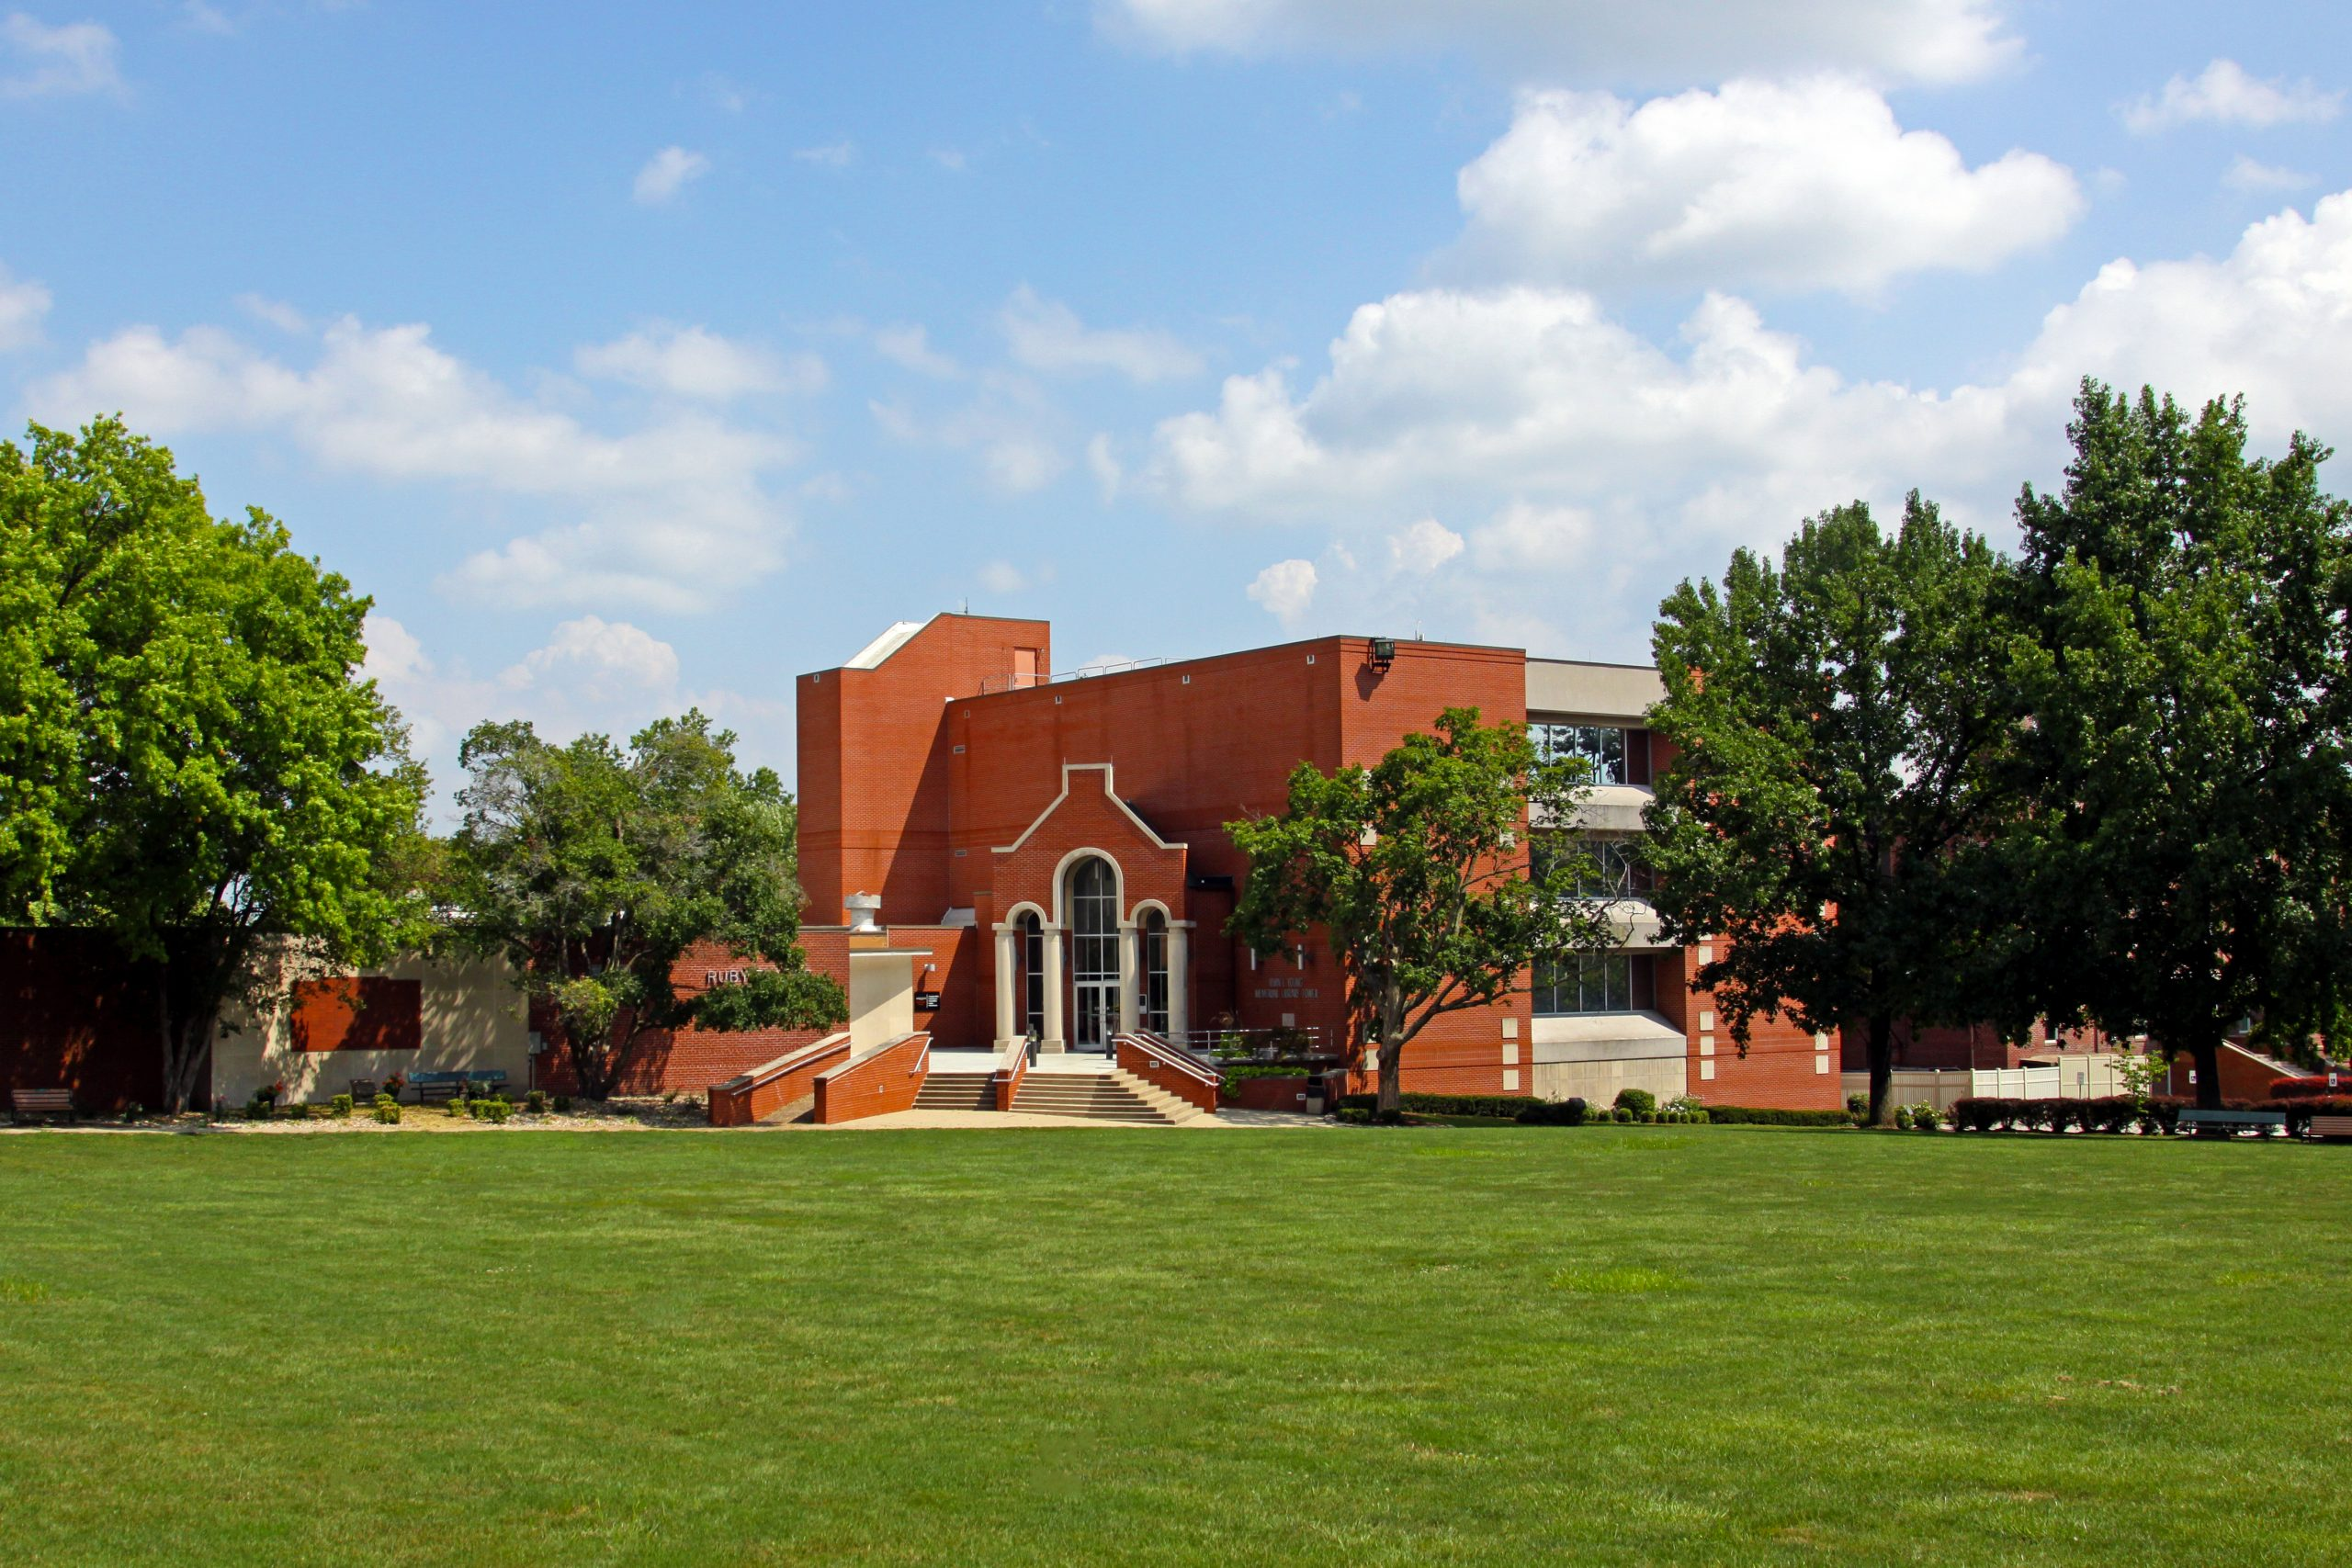 A collegiate brick building sits amid a bright green lawn on a sunny day with fluffy white clouds.